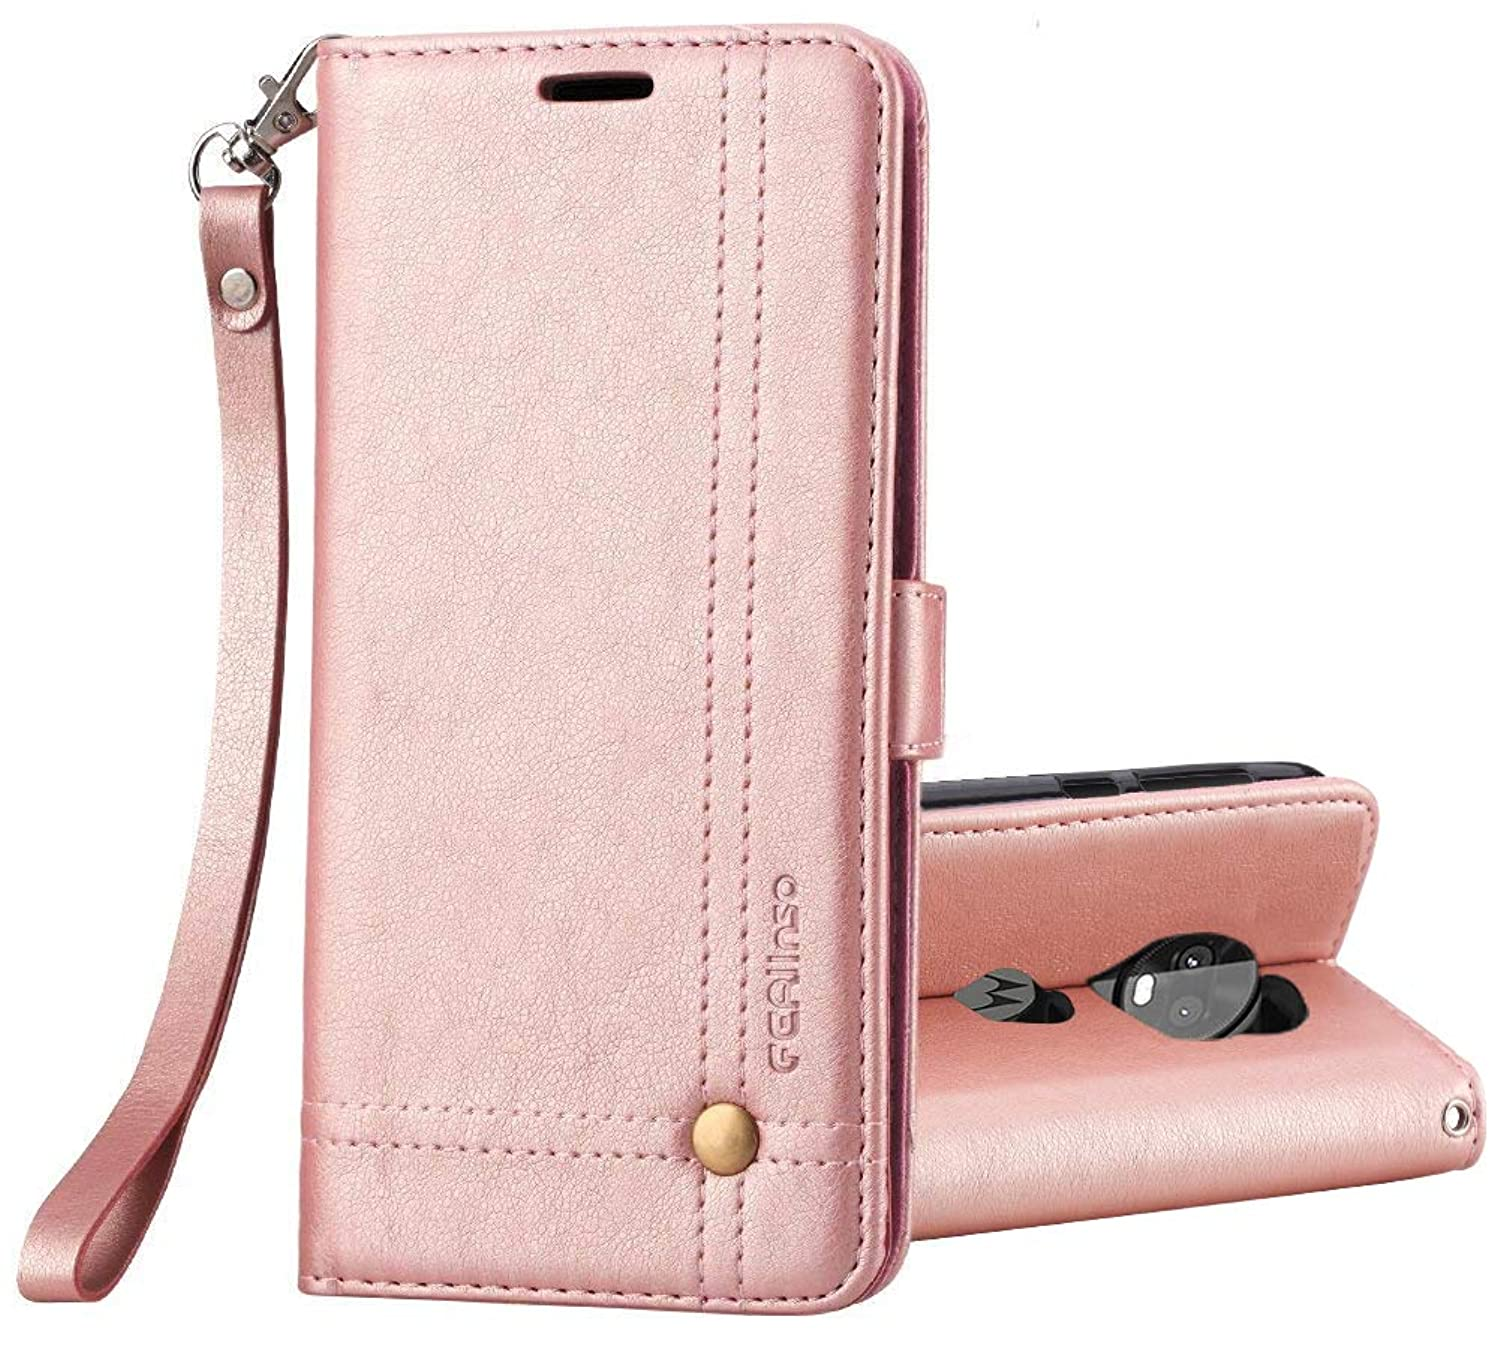 Moto X4 Case, Ferlinso Elegant Retro Leather with ID Credit Card Slot Holder Flip Cover Stand Magnetic Closure Case for Moto X4-Rose Gold